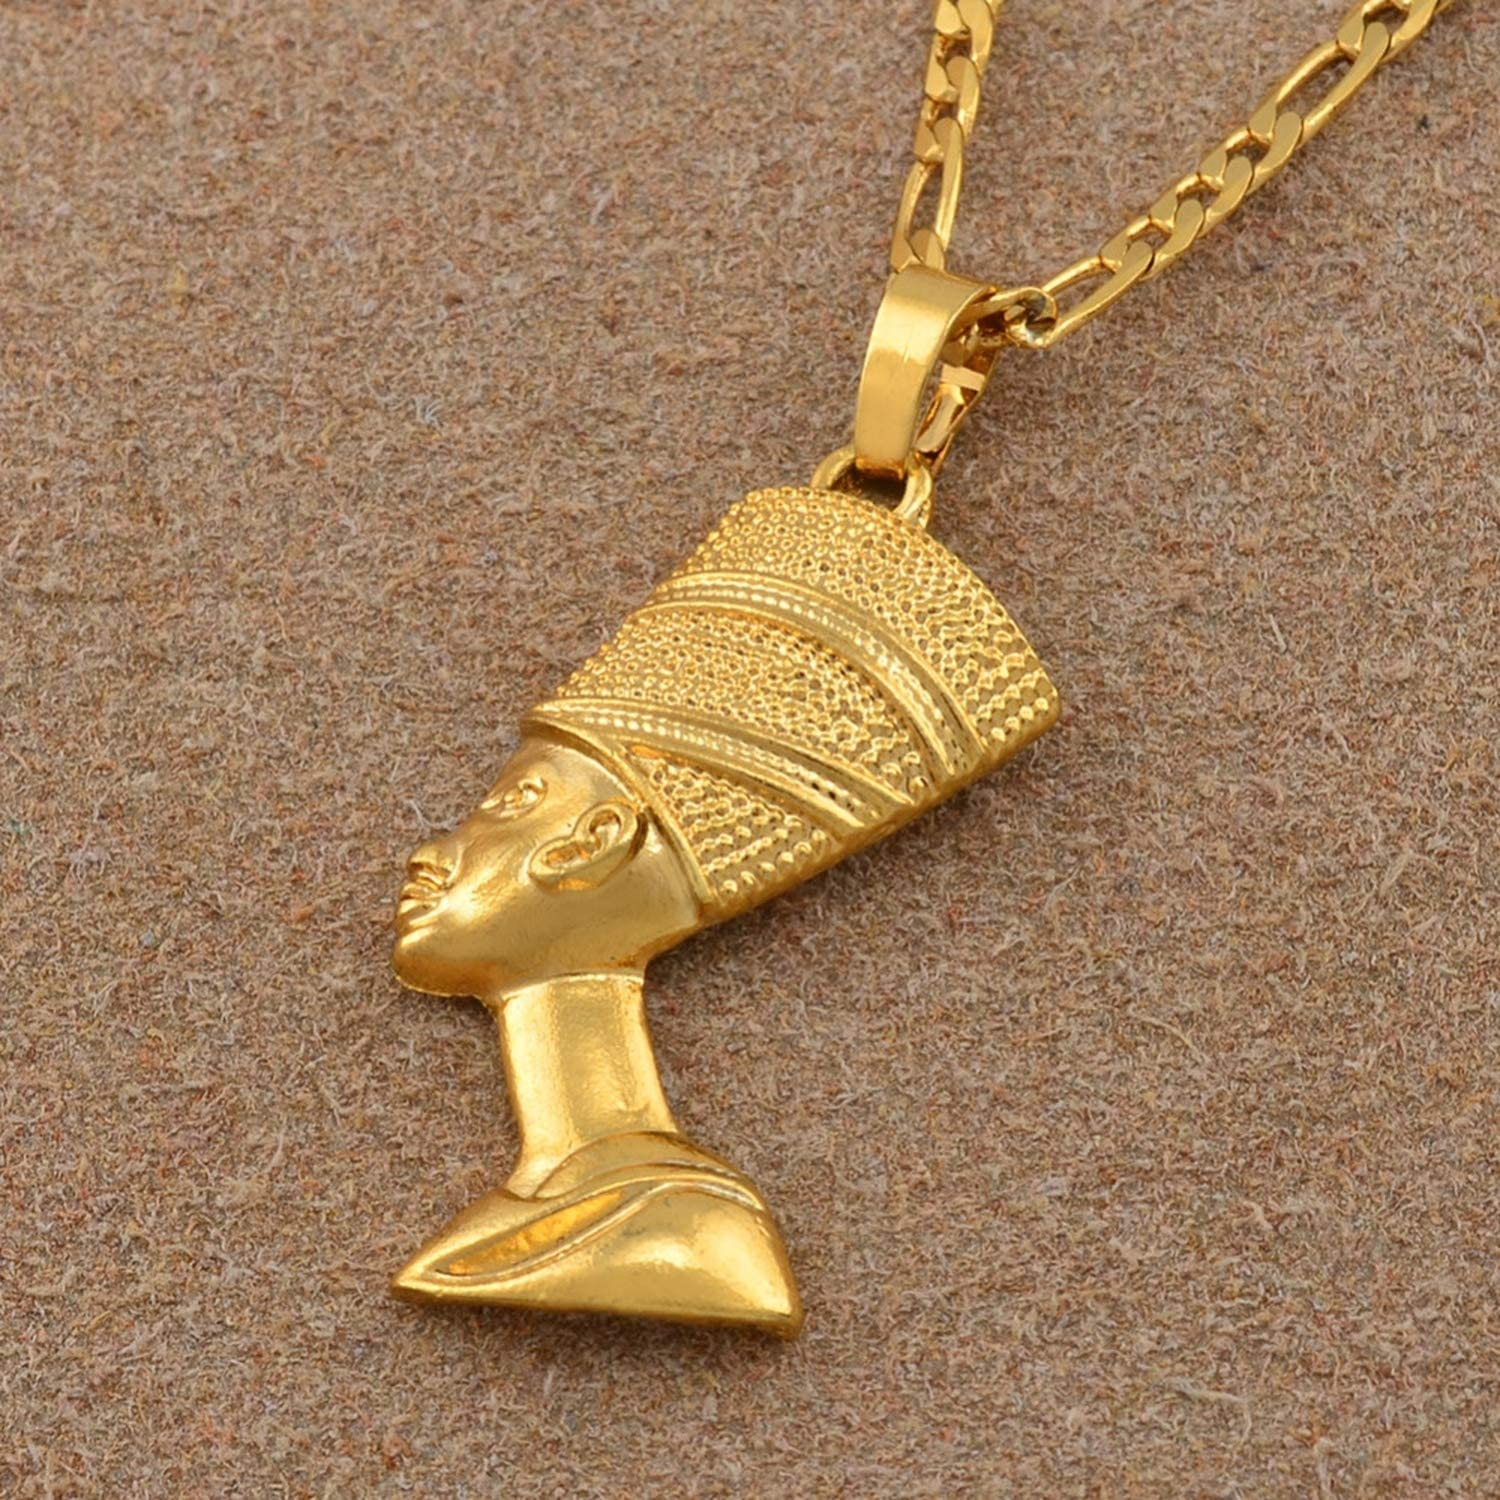 Yerings Egyptian Queen Pendant Necklaces for Women Men Jewelry Gold Color Jewellery African Gift